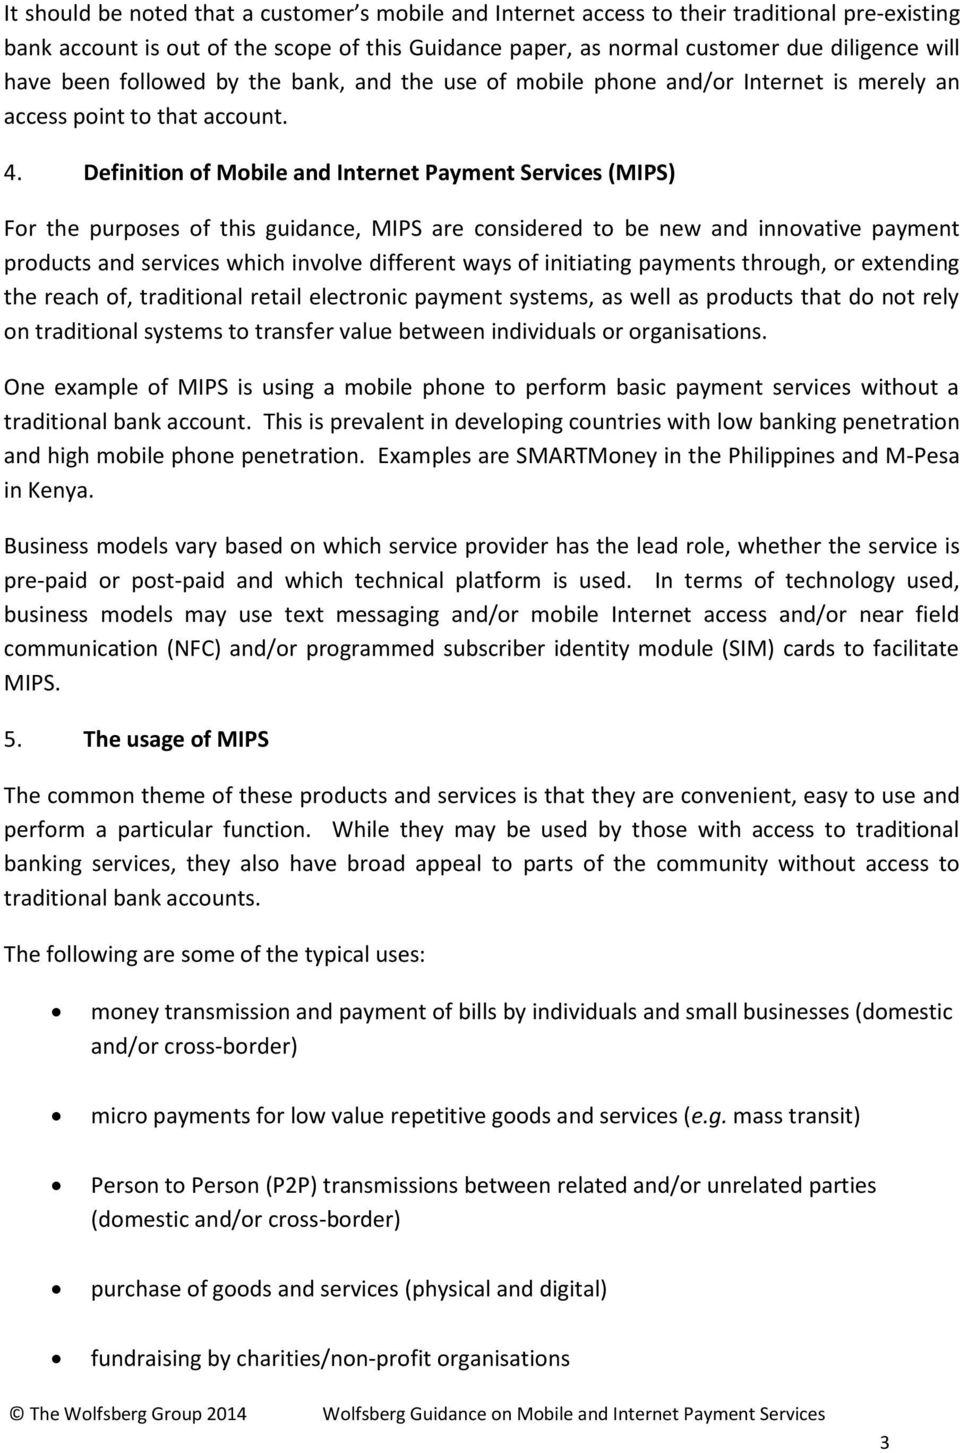 Definition of Mobile and Internet Payment Services (MIPS) For the purposes of this guidance, MIPS are considered to be new and innovative payment products and services which involve different ways of